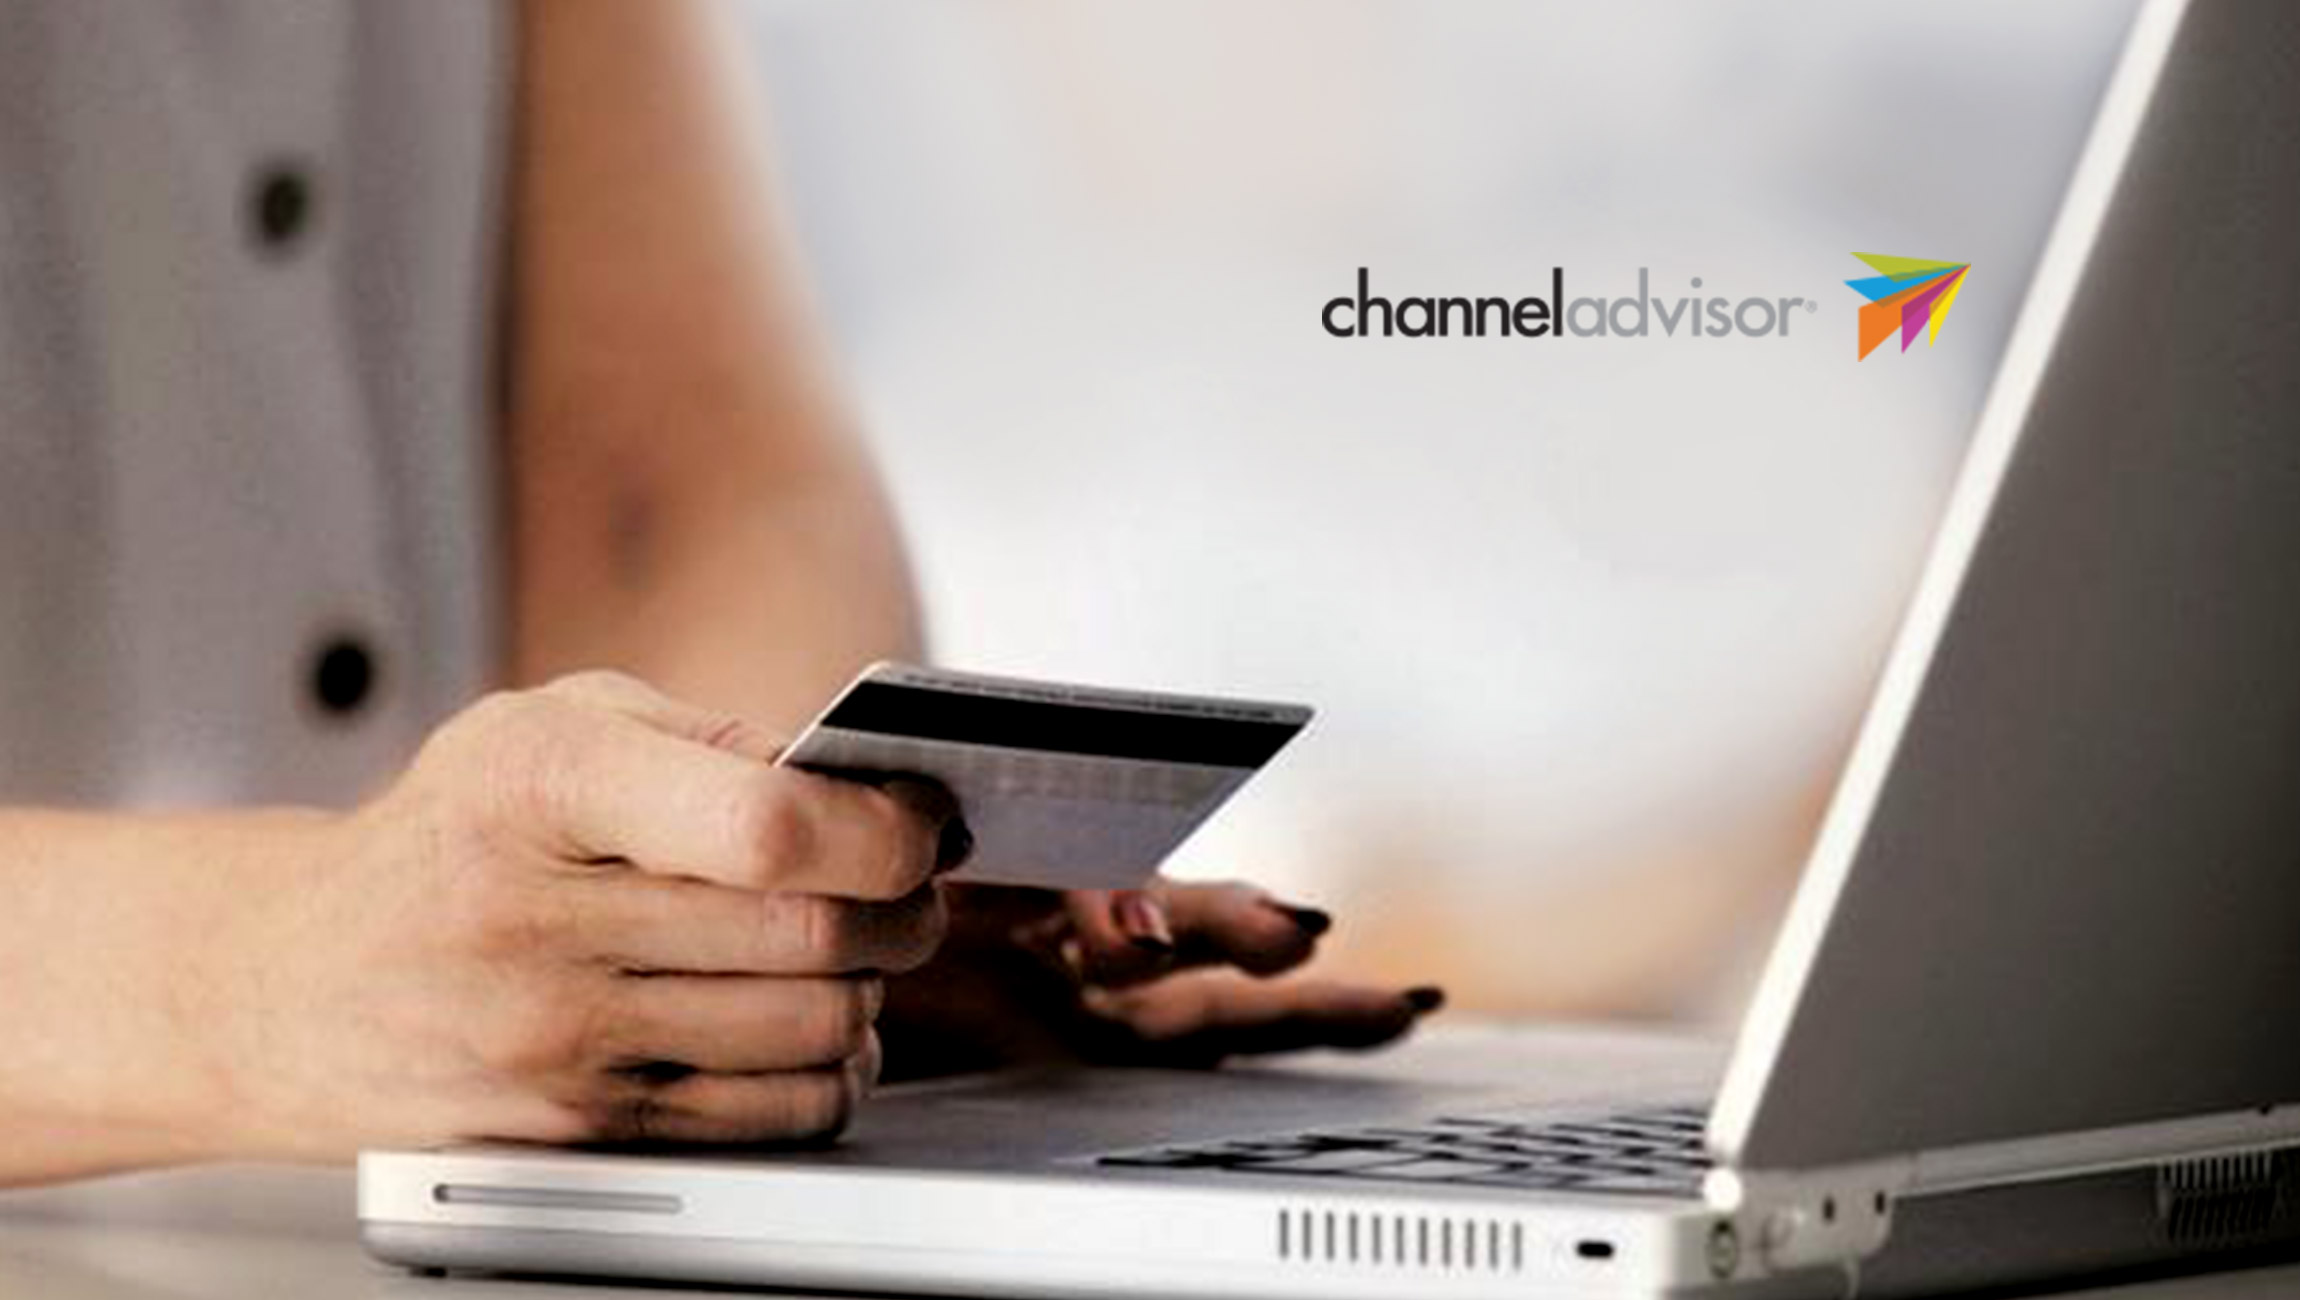 ChannelAdvisor Debuts New E-Commerce Technologies Connecting Brands and Retailers with Empowered Consumers